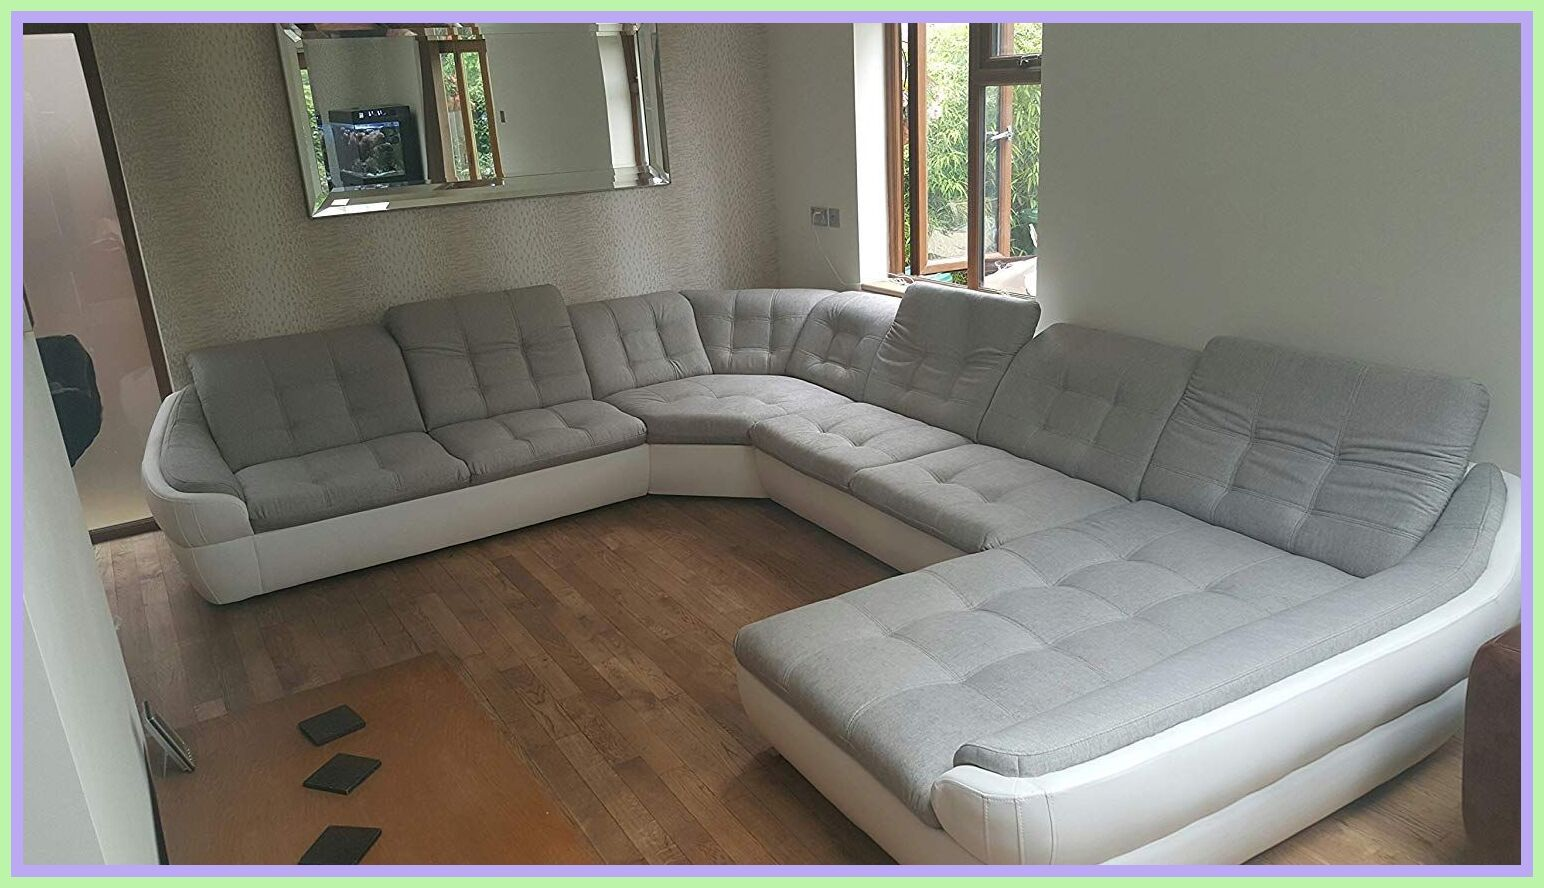 96 Reference Of Sofa Bed Amazon Uk In 2020 Leather Corner Sofa Sofa Bed Design Diy Sofa Bed